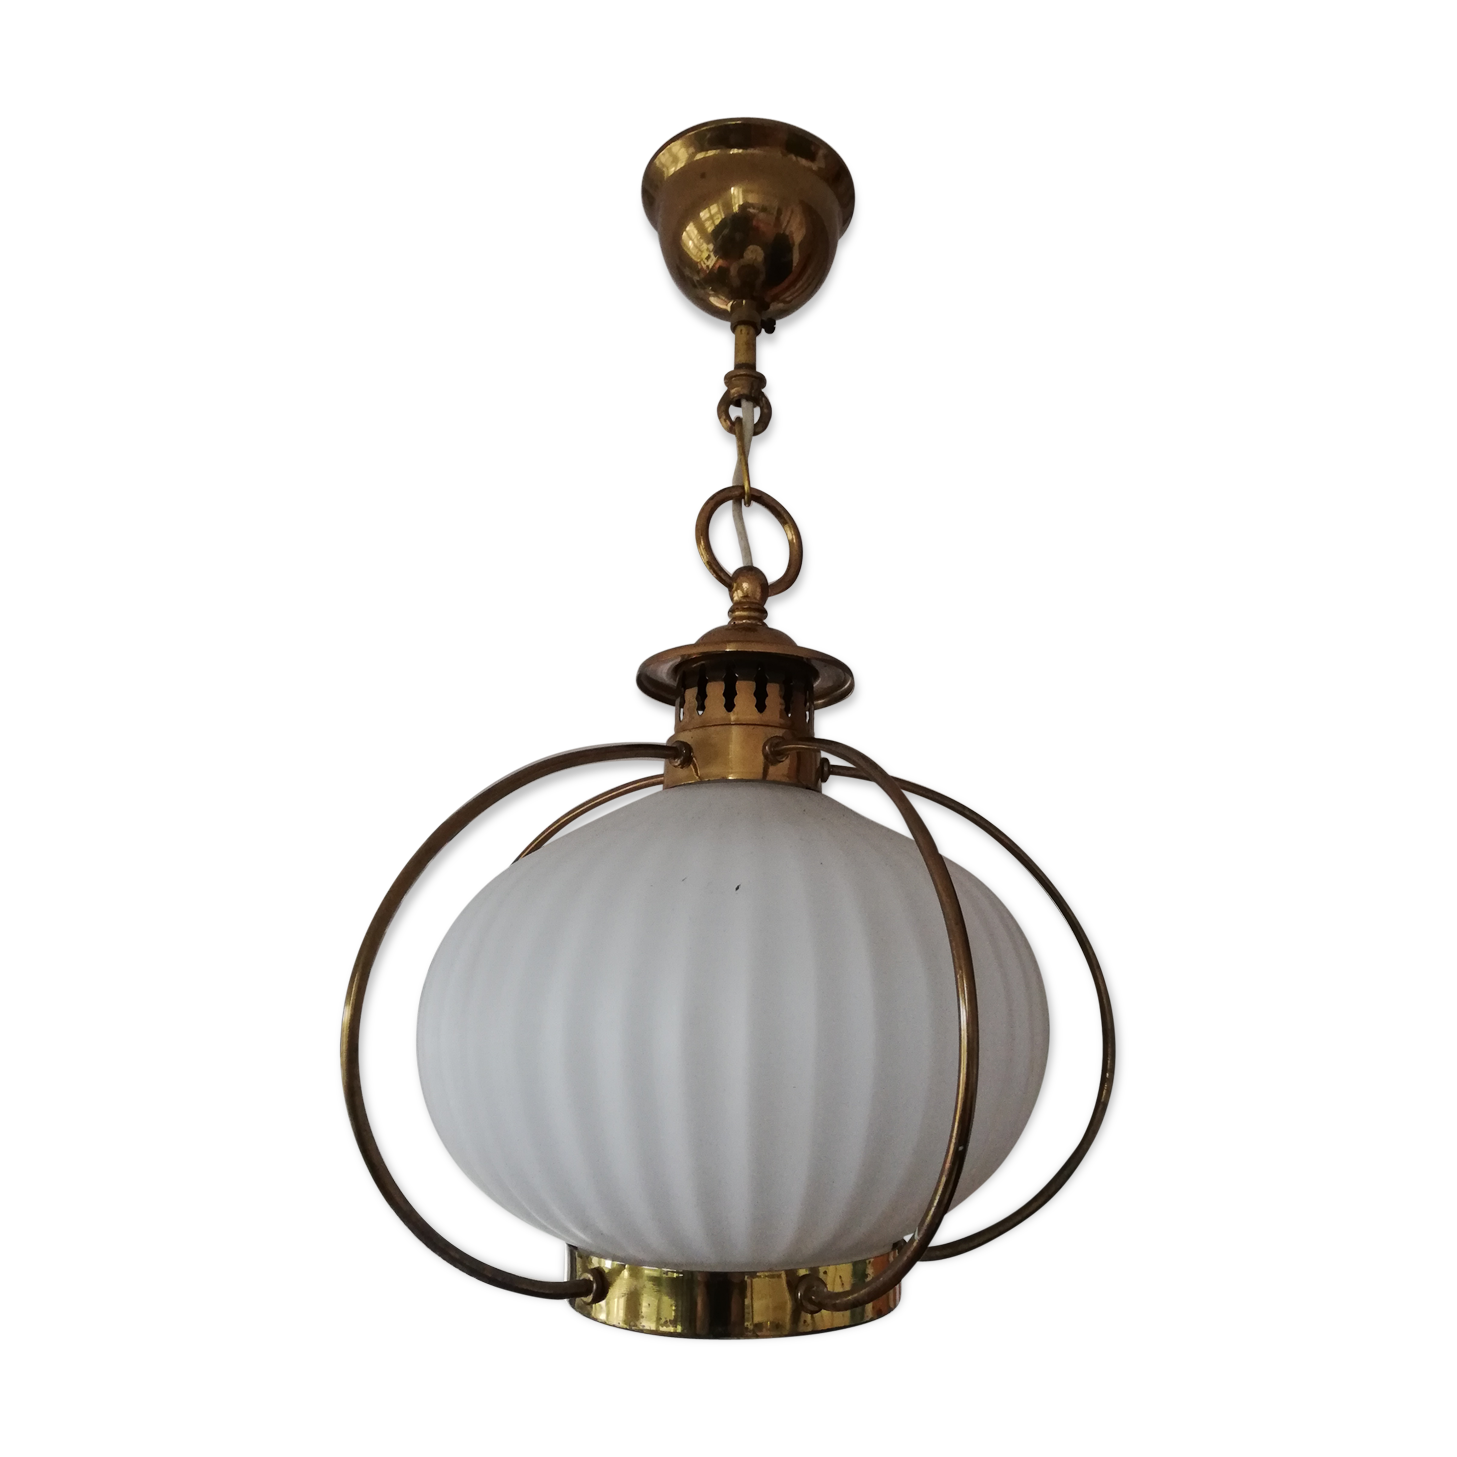 20th Century Antique Globe Opaline White For Suspension Chandelier Lamps